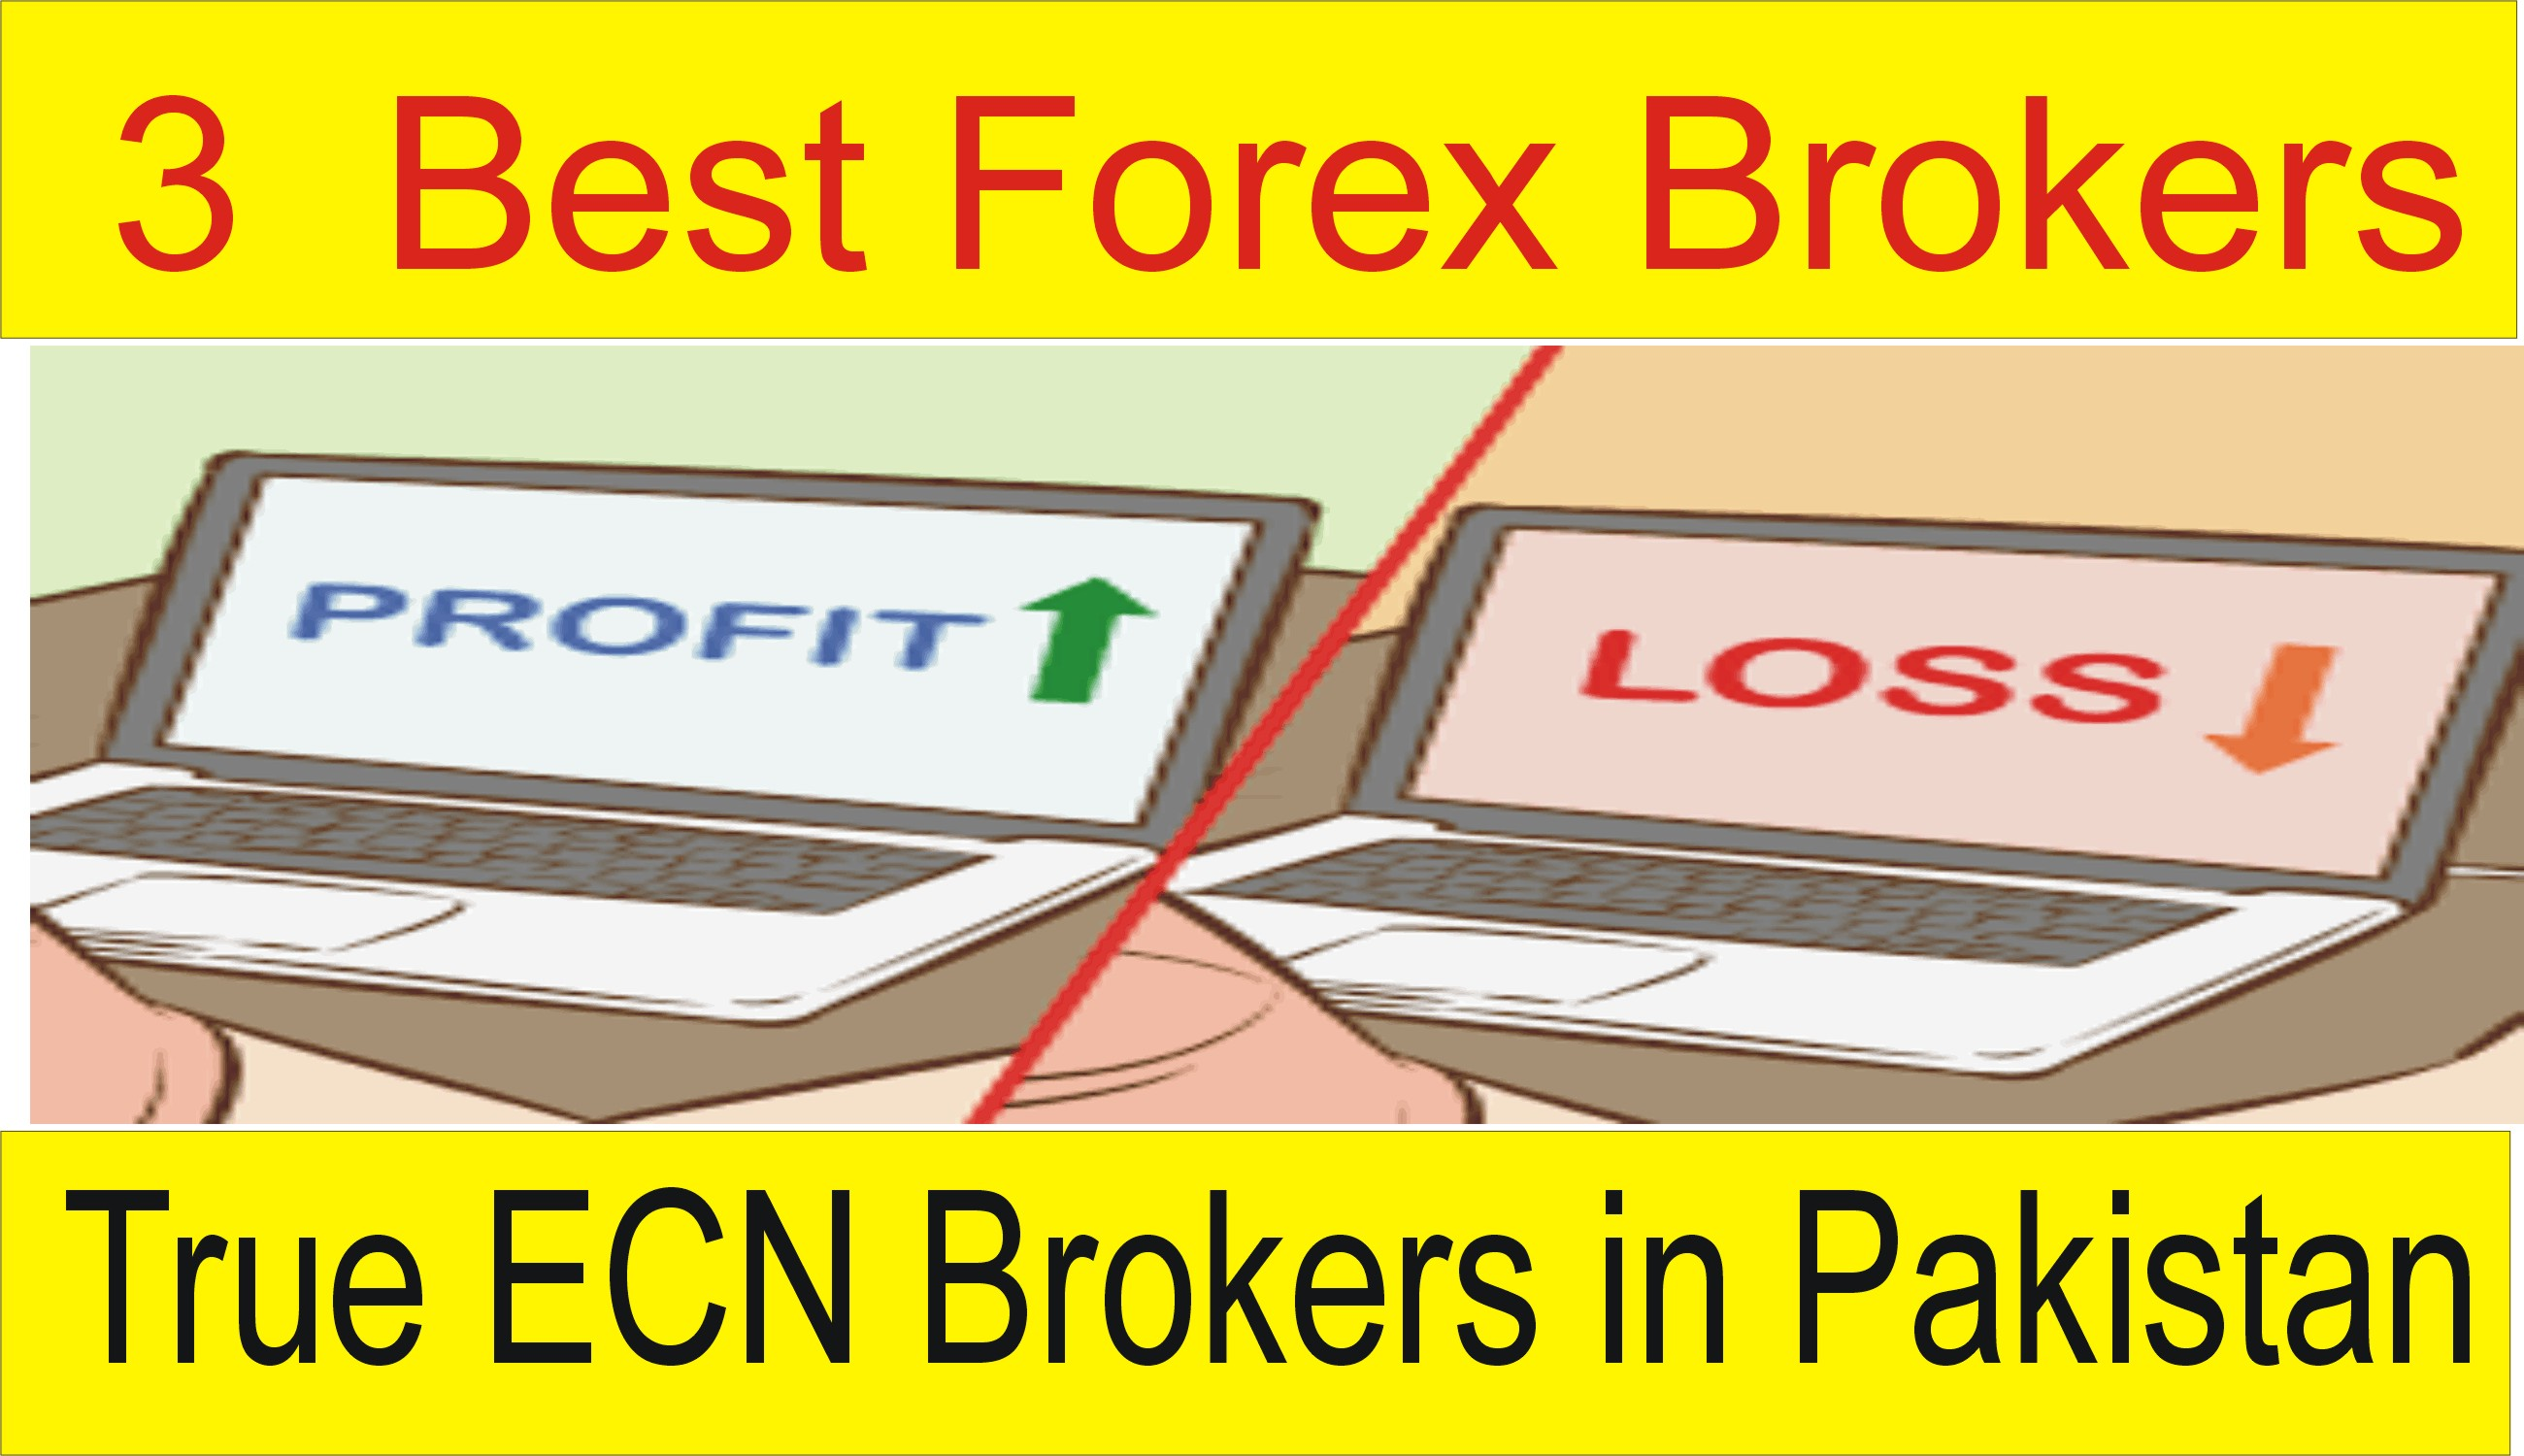 Best Top 3 Forex Brokers In Pakistan And India - Tani Forex